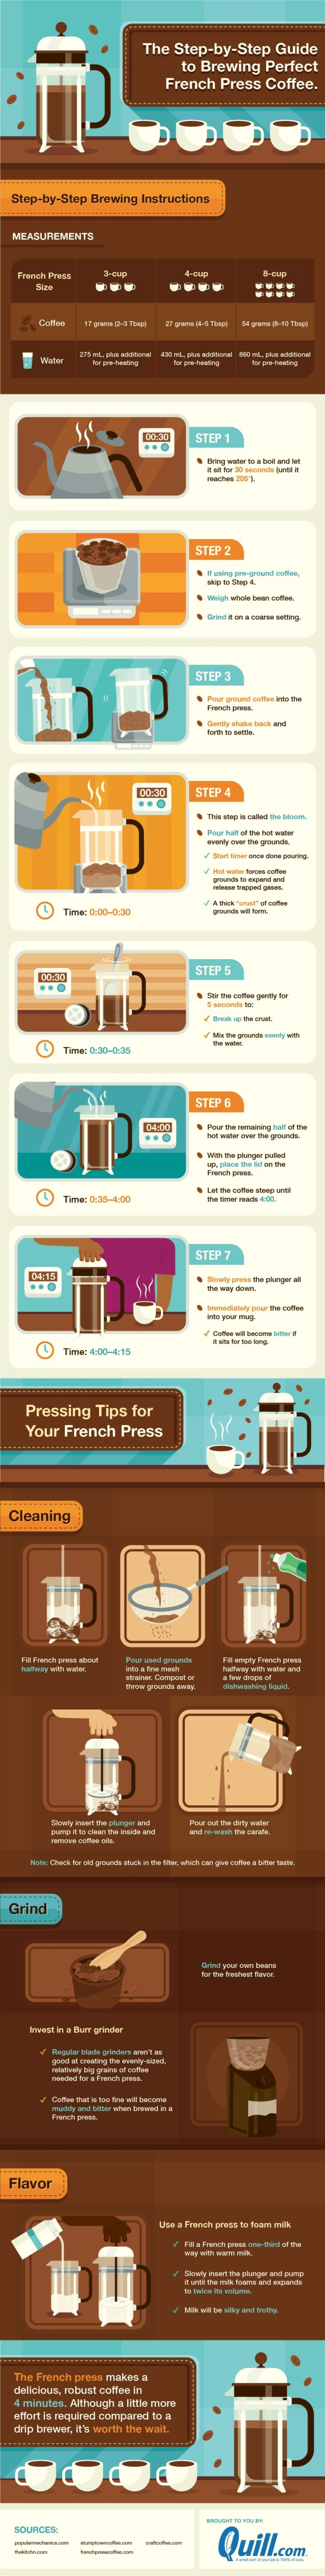 The step-by-step guide to brewing perfect French press coffee.